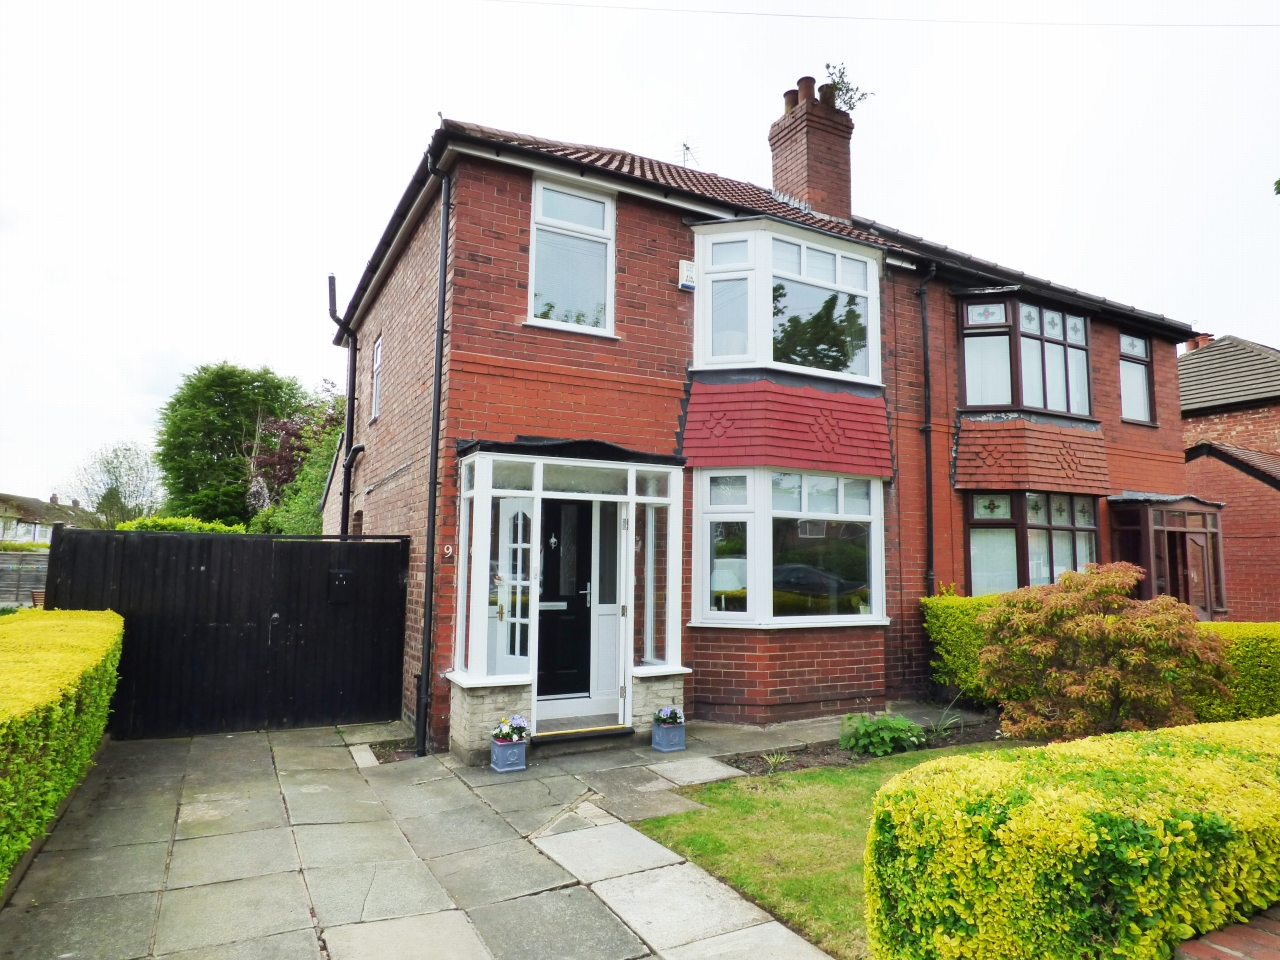 2 Bedroom Semi Detached House For Sale In 9 Rutland Road Stockport Sk7